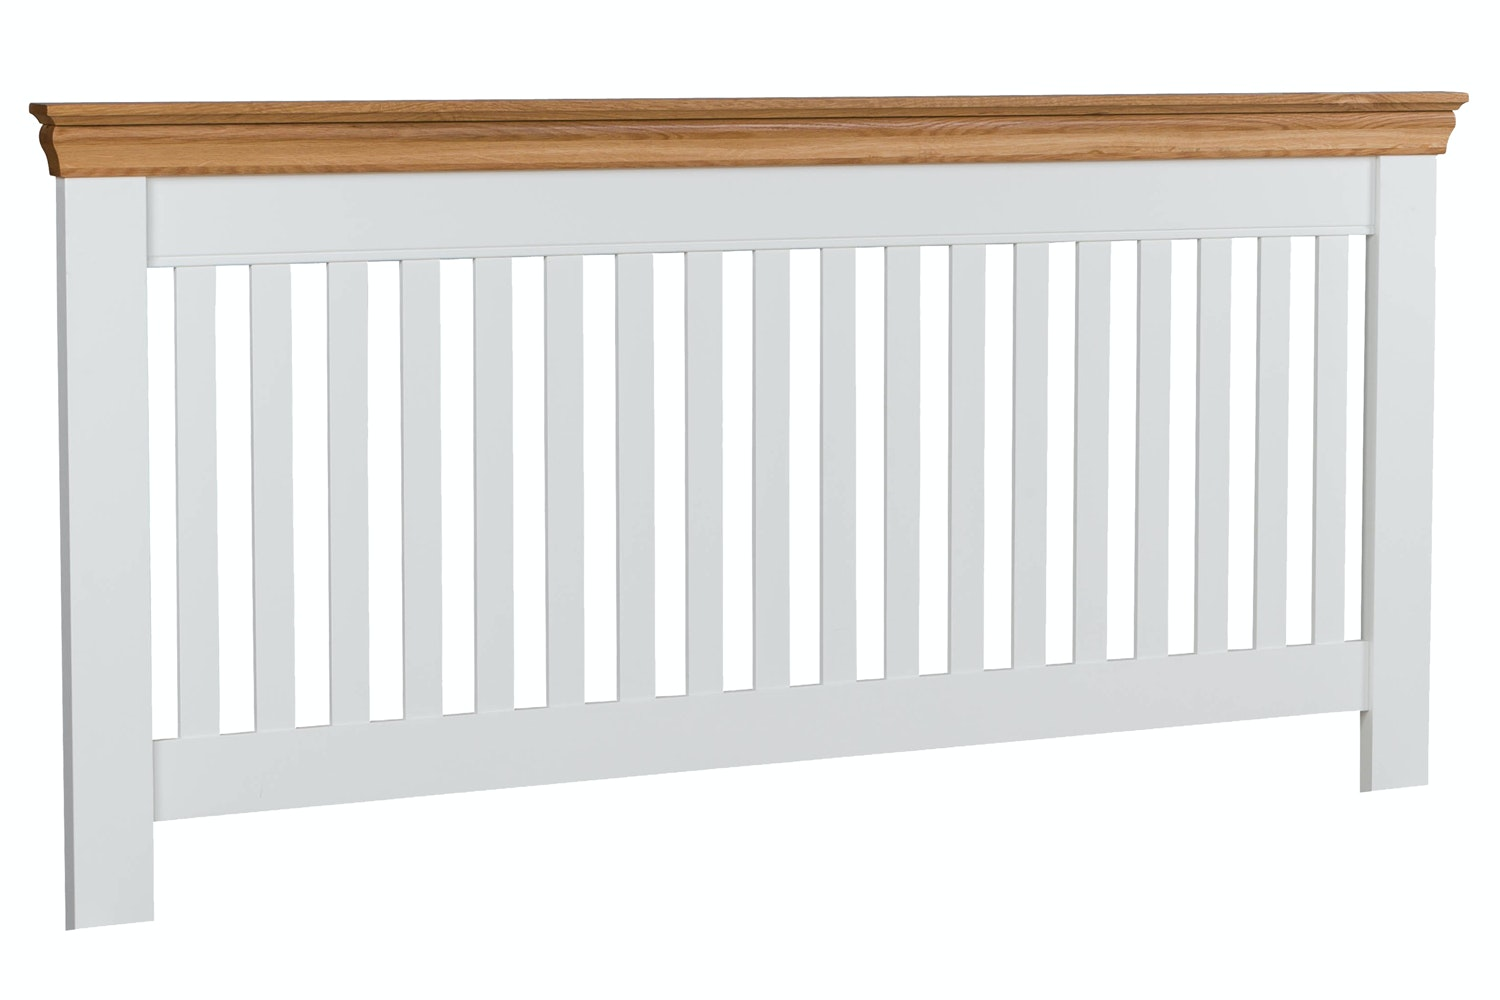 Ascott Headboard | 4ft6 | White & Oak